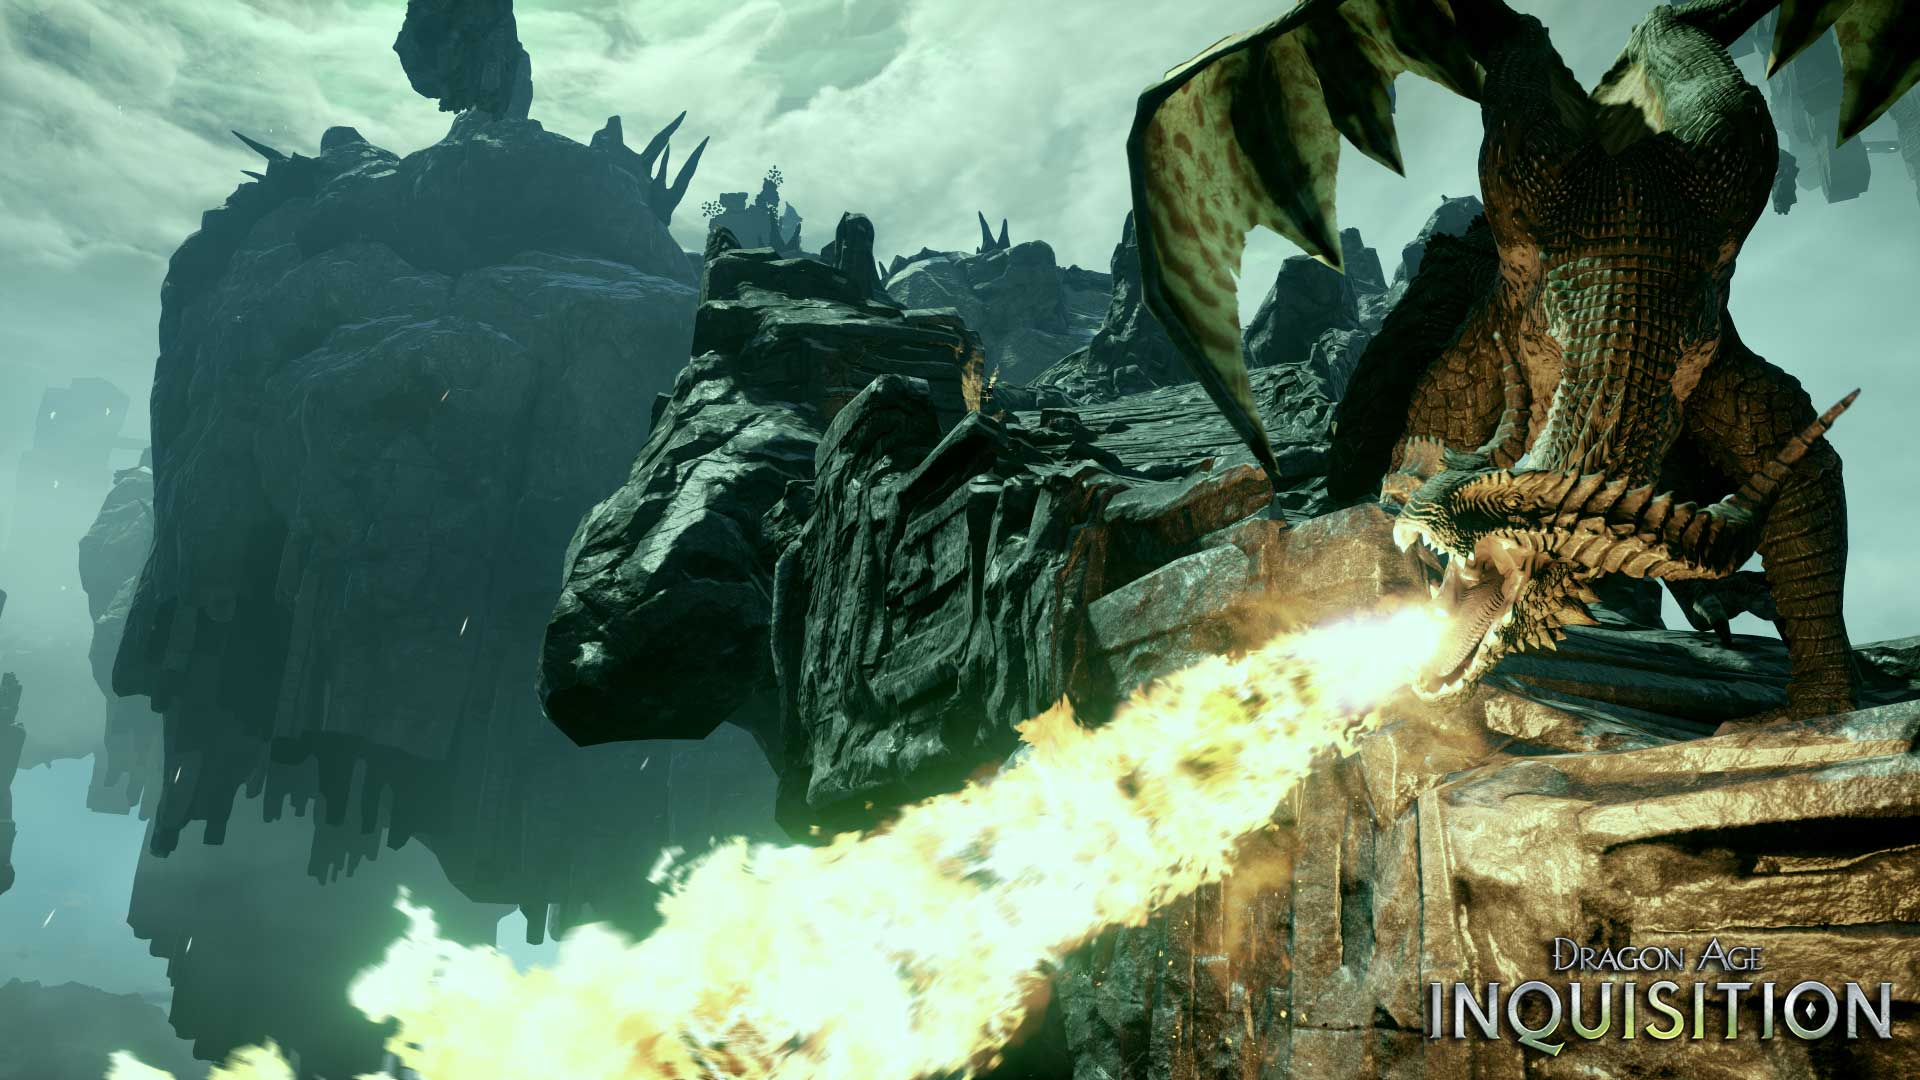 'Dragon Age: Inquisition' As Game Of The Year Is Like ...